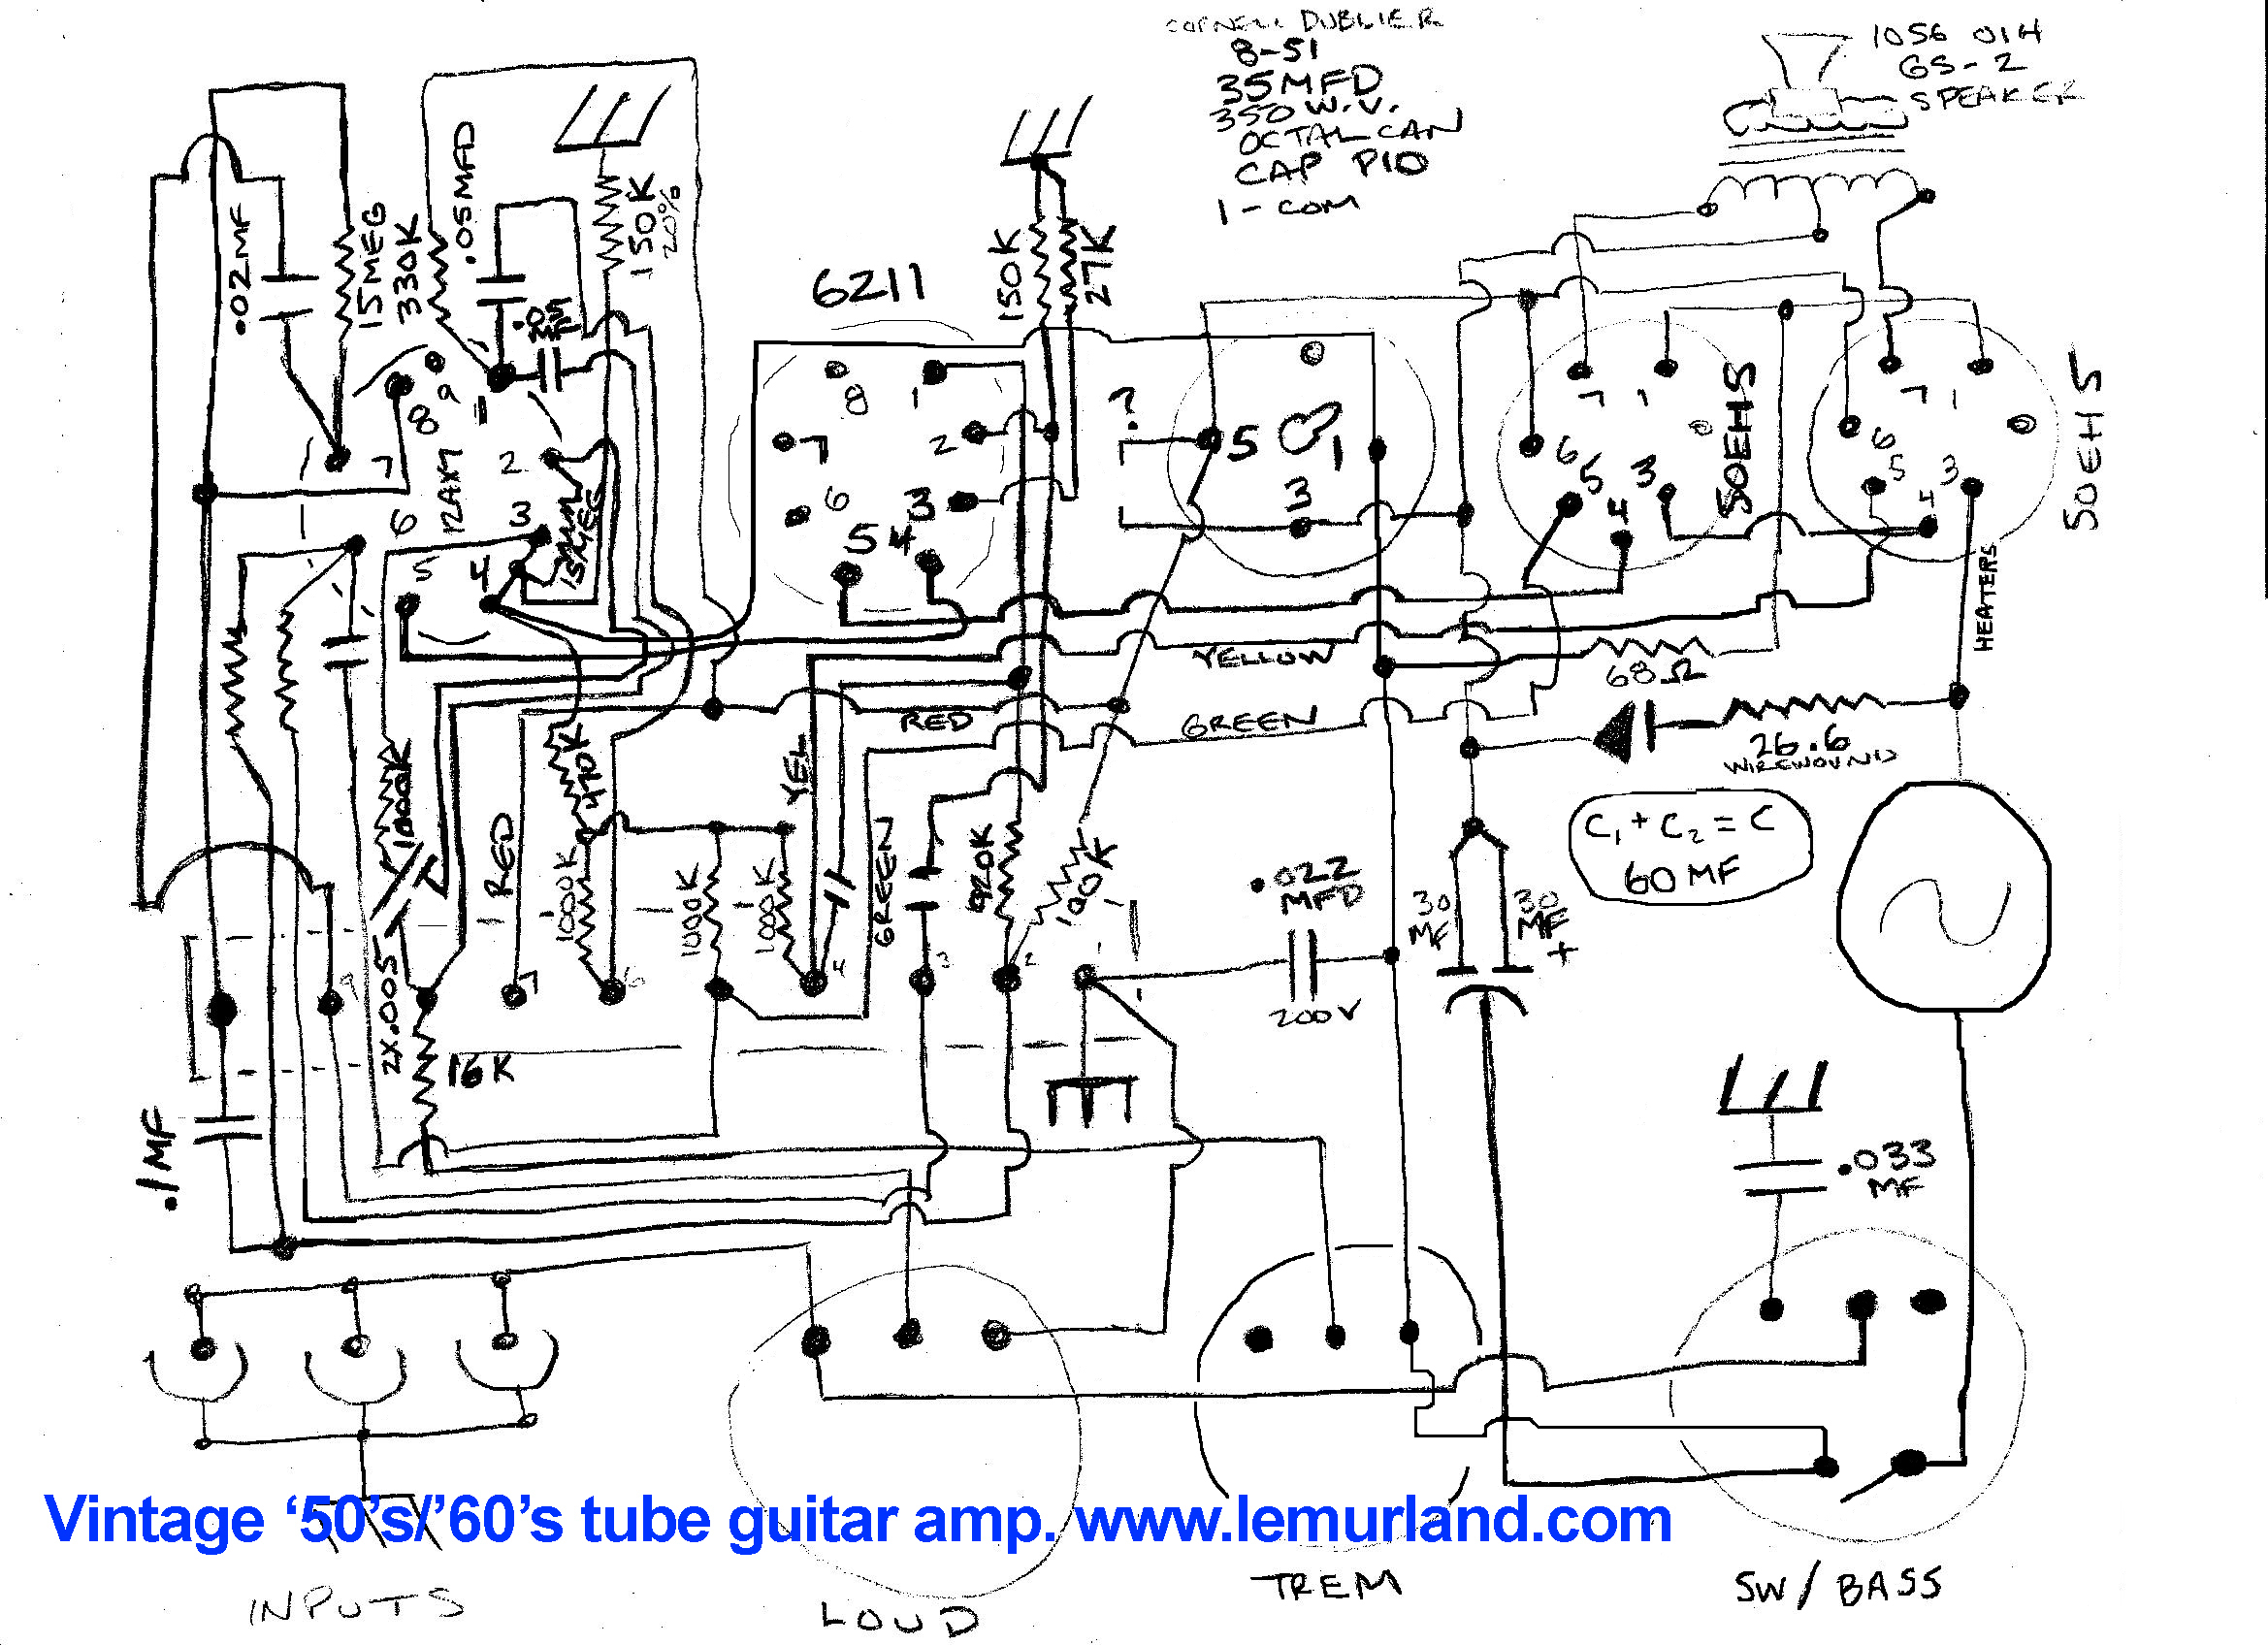 Alembic F 2b Inspired Preamp Clone Tube Schematic 50s 60s 50eh5 Guitar Amp